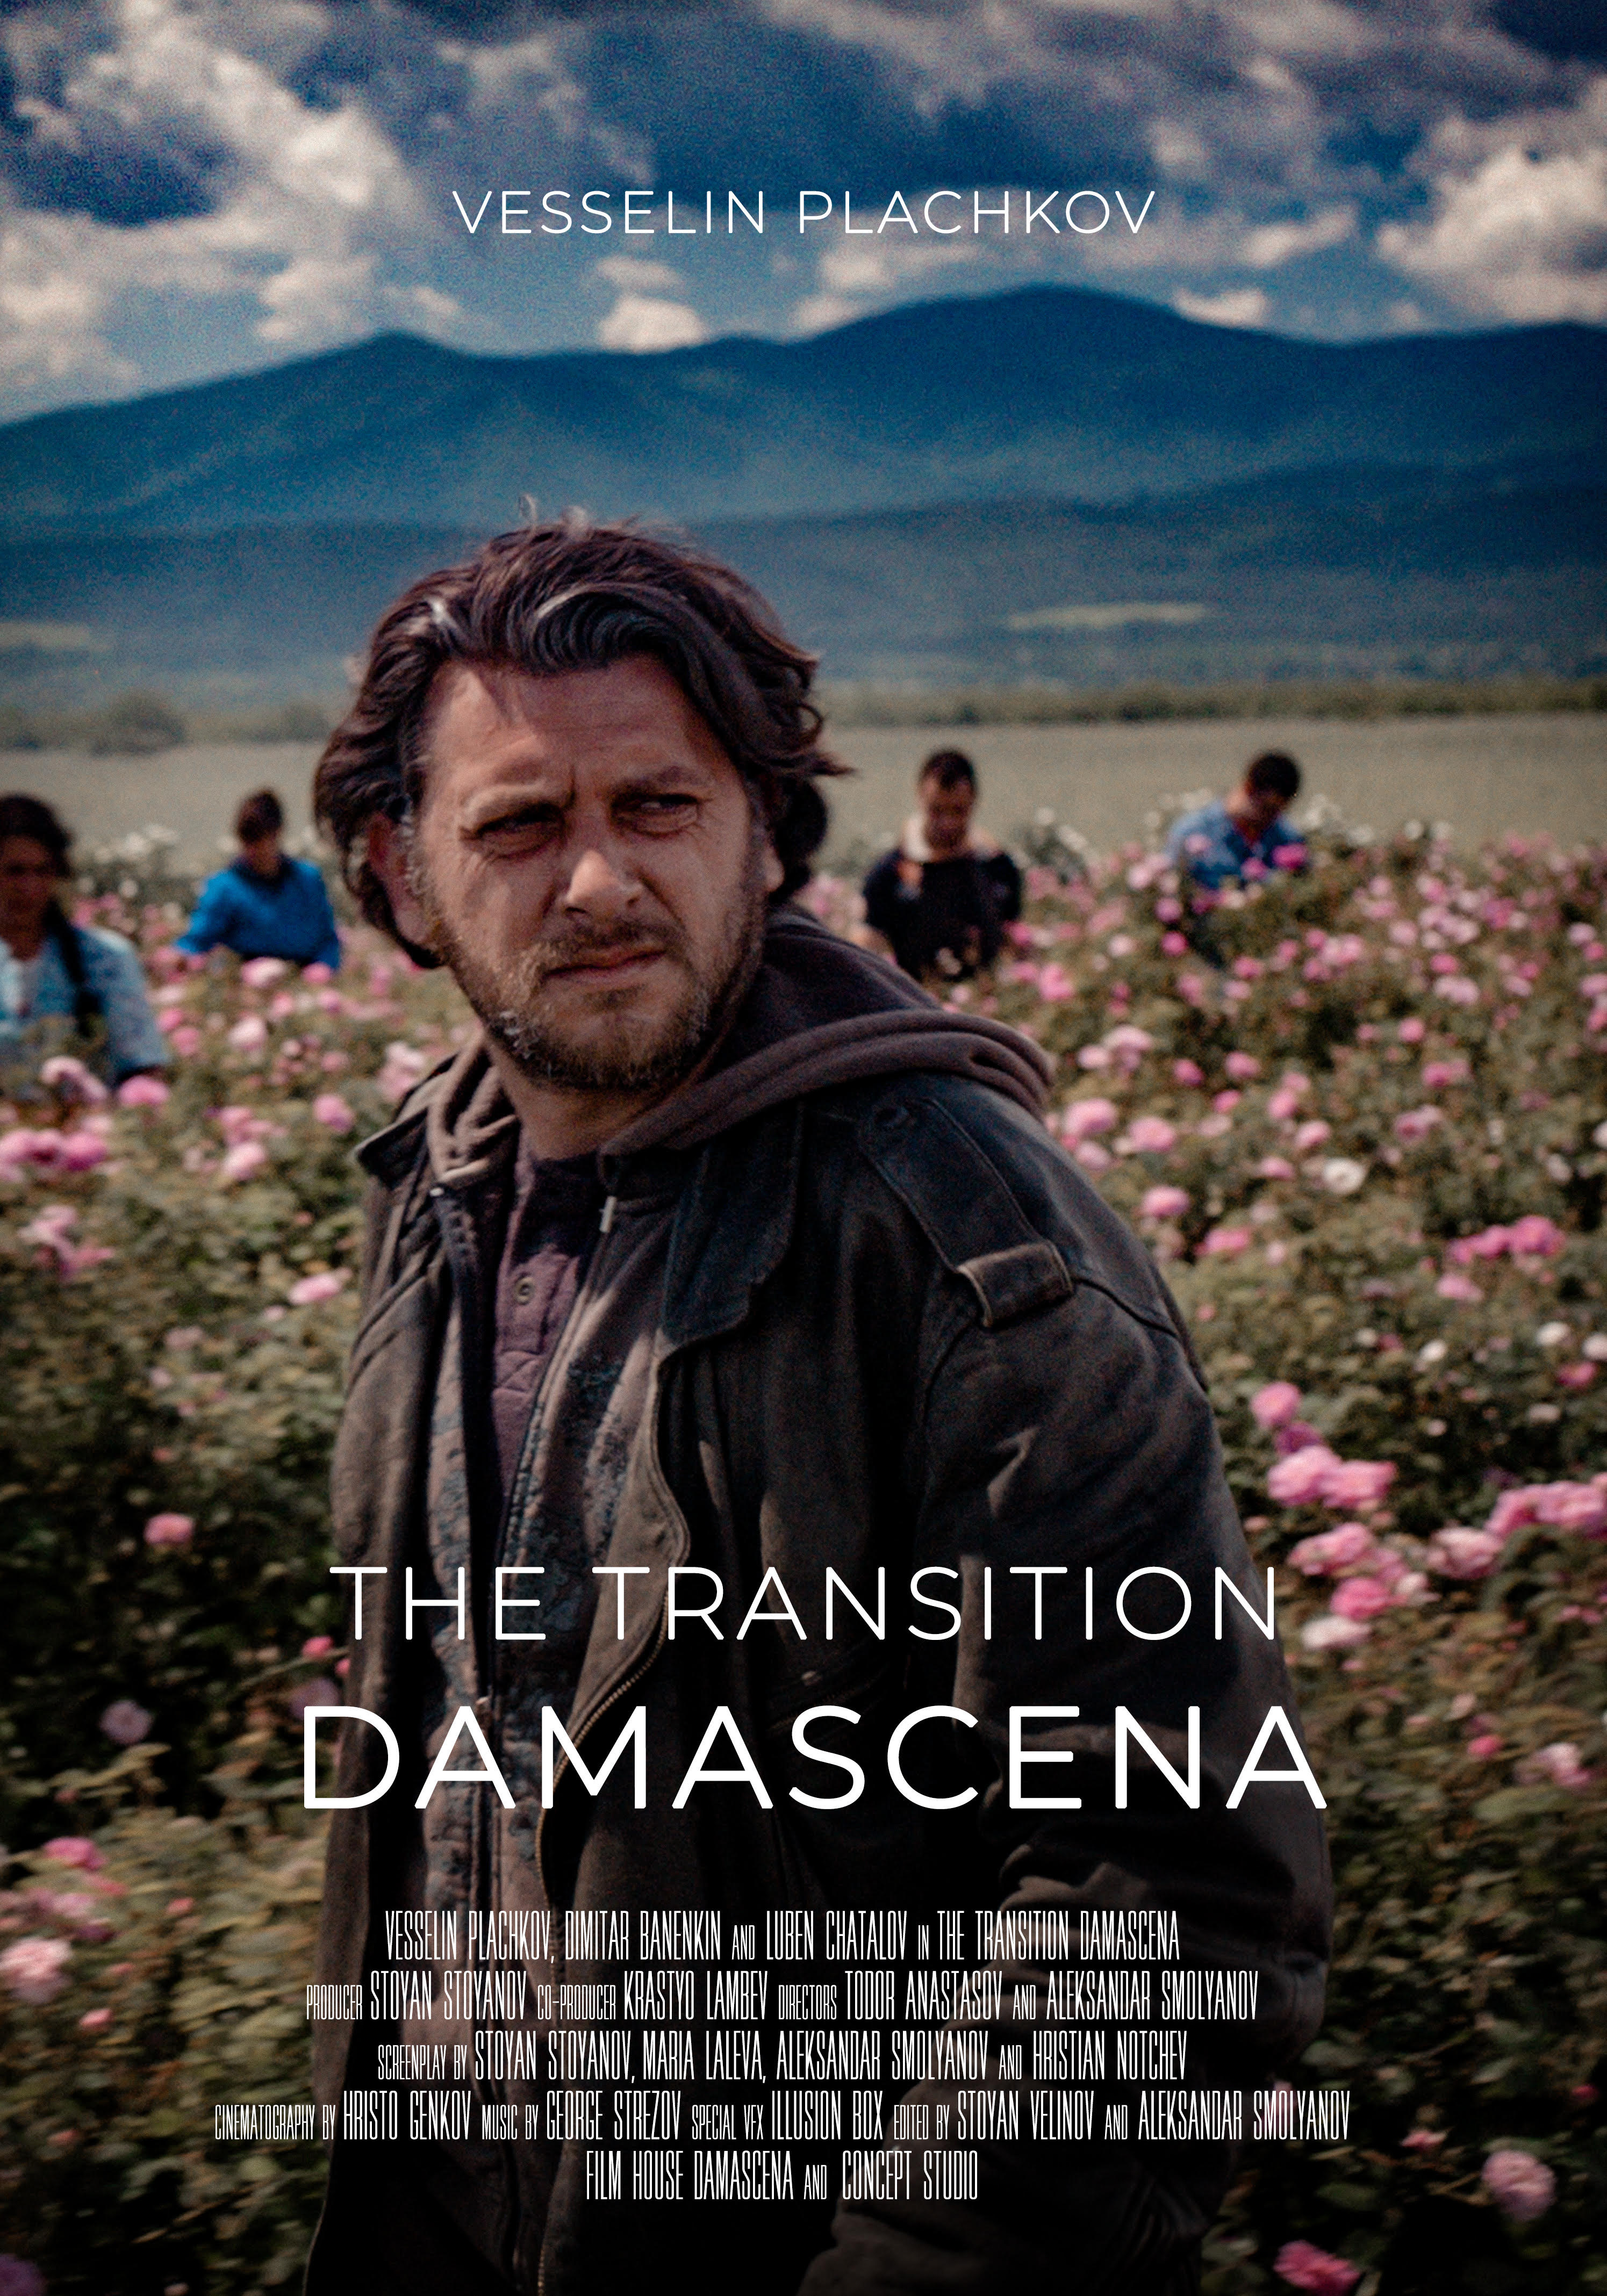 Damascena: The Transition